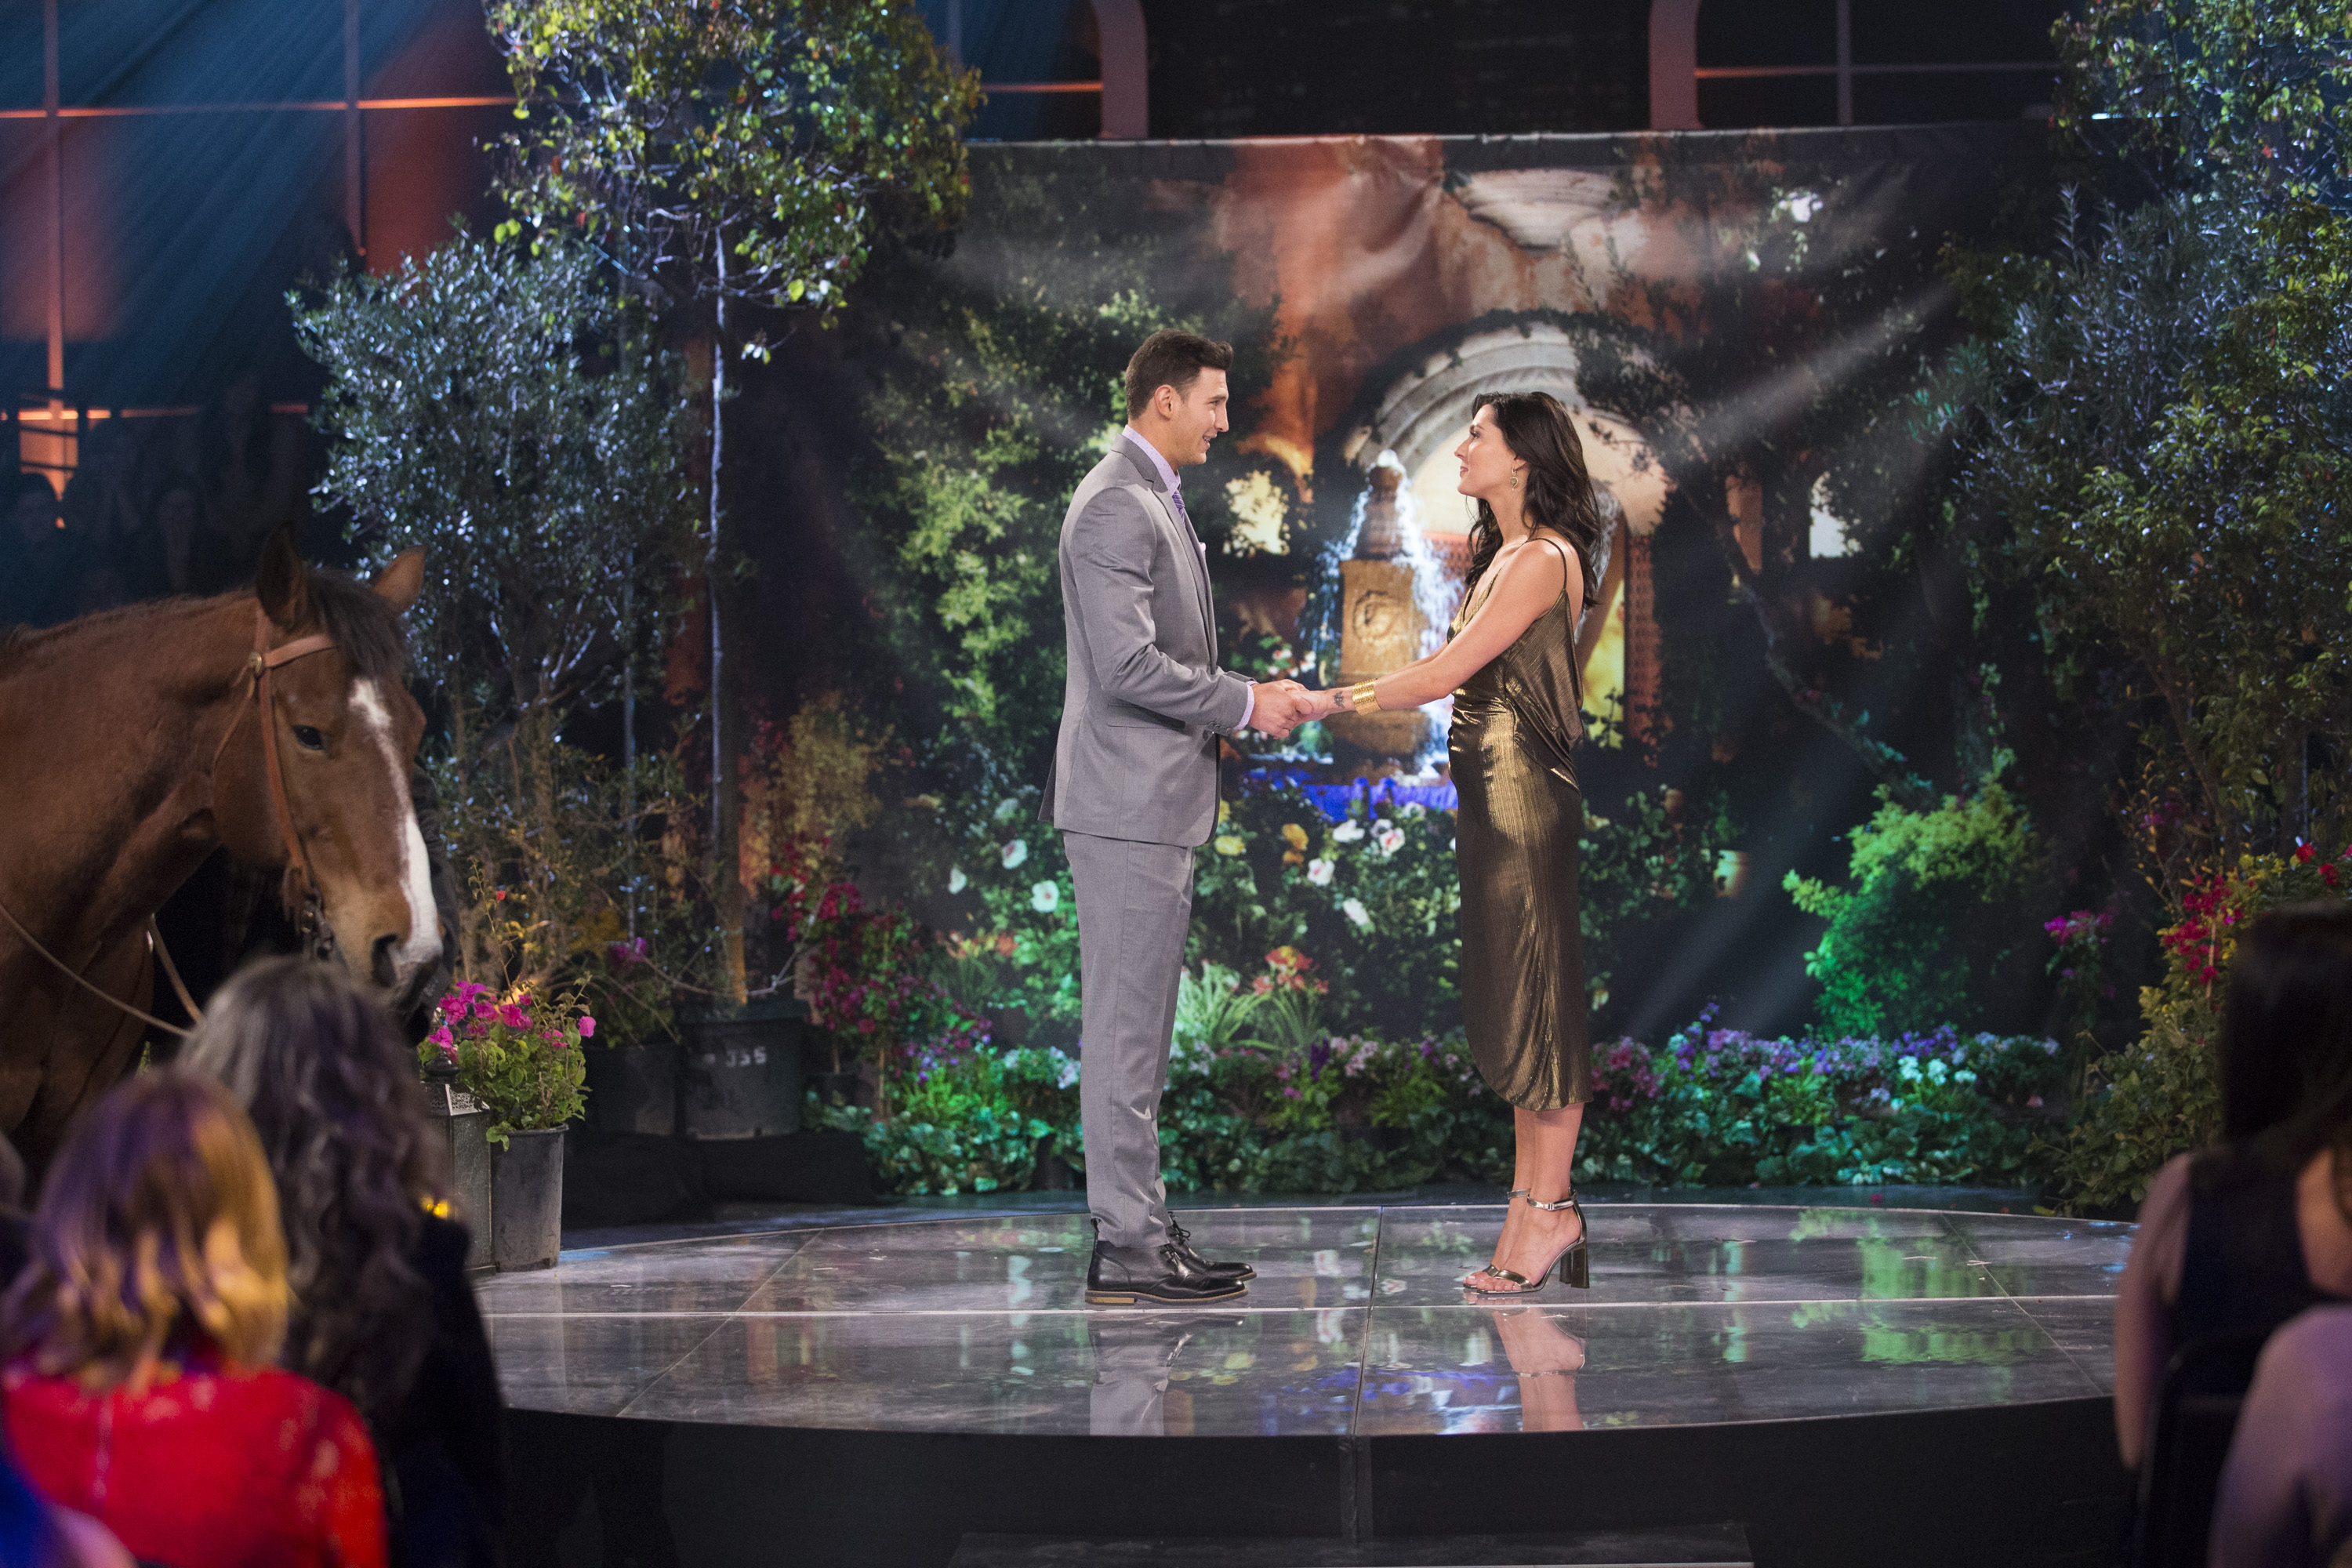 """As the saying goes, when you fall off the horse, you have to get back up again,"" the fifth contestant Blake said. ""I brought you that horse, and I want to be the man who helps you get back up again."" Ok, normally we would totally be rolling our eyes at such a scripted pick-up line/entrance, but we're also romantics at heart and just want Becca to find the happy ending she deserves! (Image: ABC/Paul Hebert)"